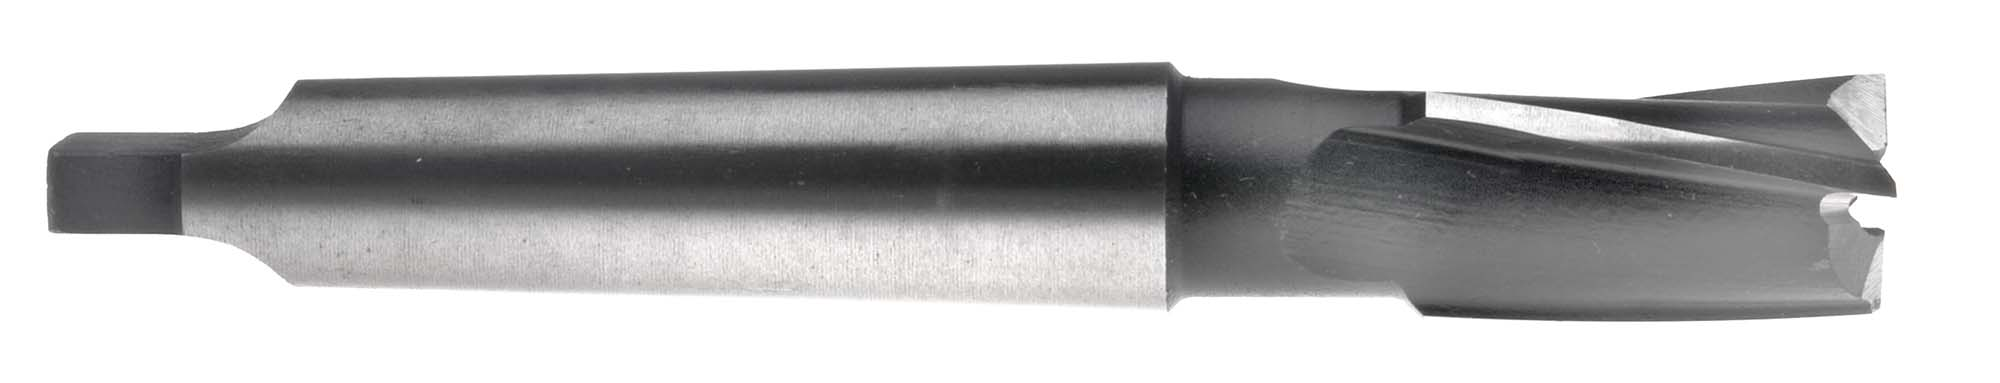 "7/8"" Taper Shank Counterbore, Interchangeable Pilot Type, High Speed Steel"